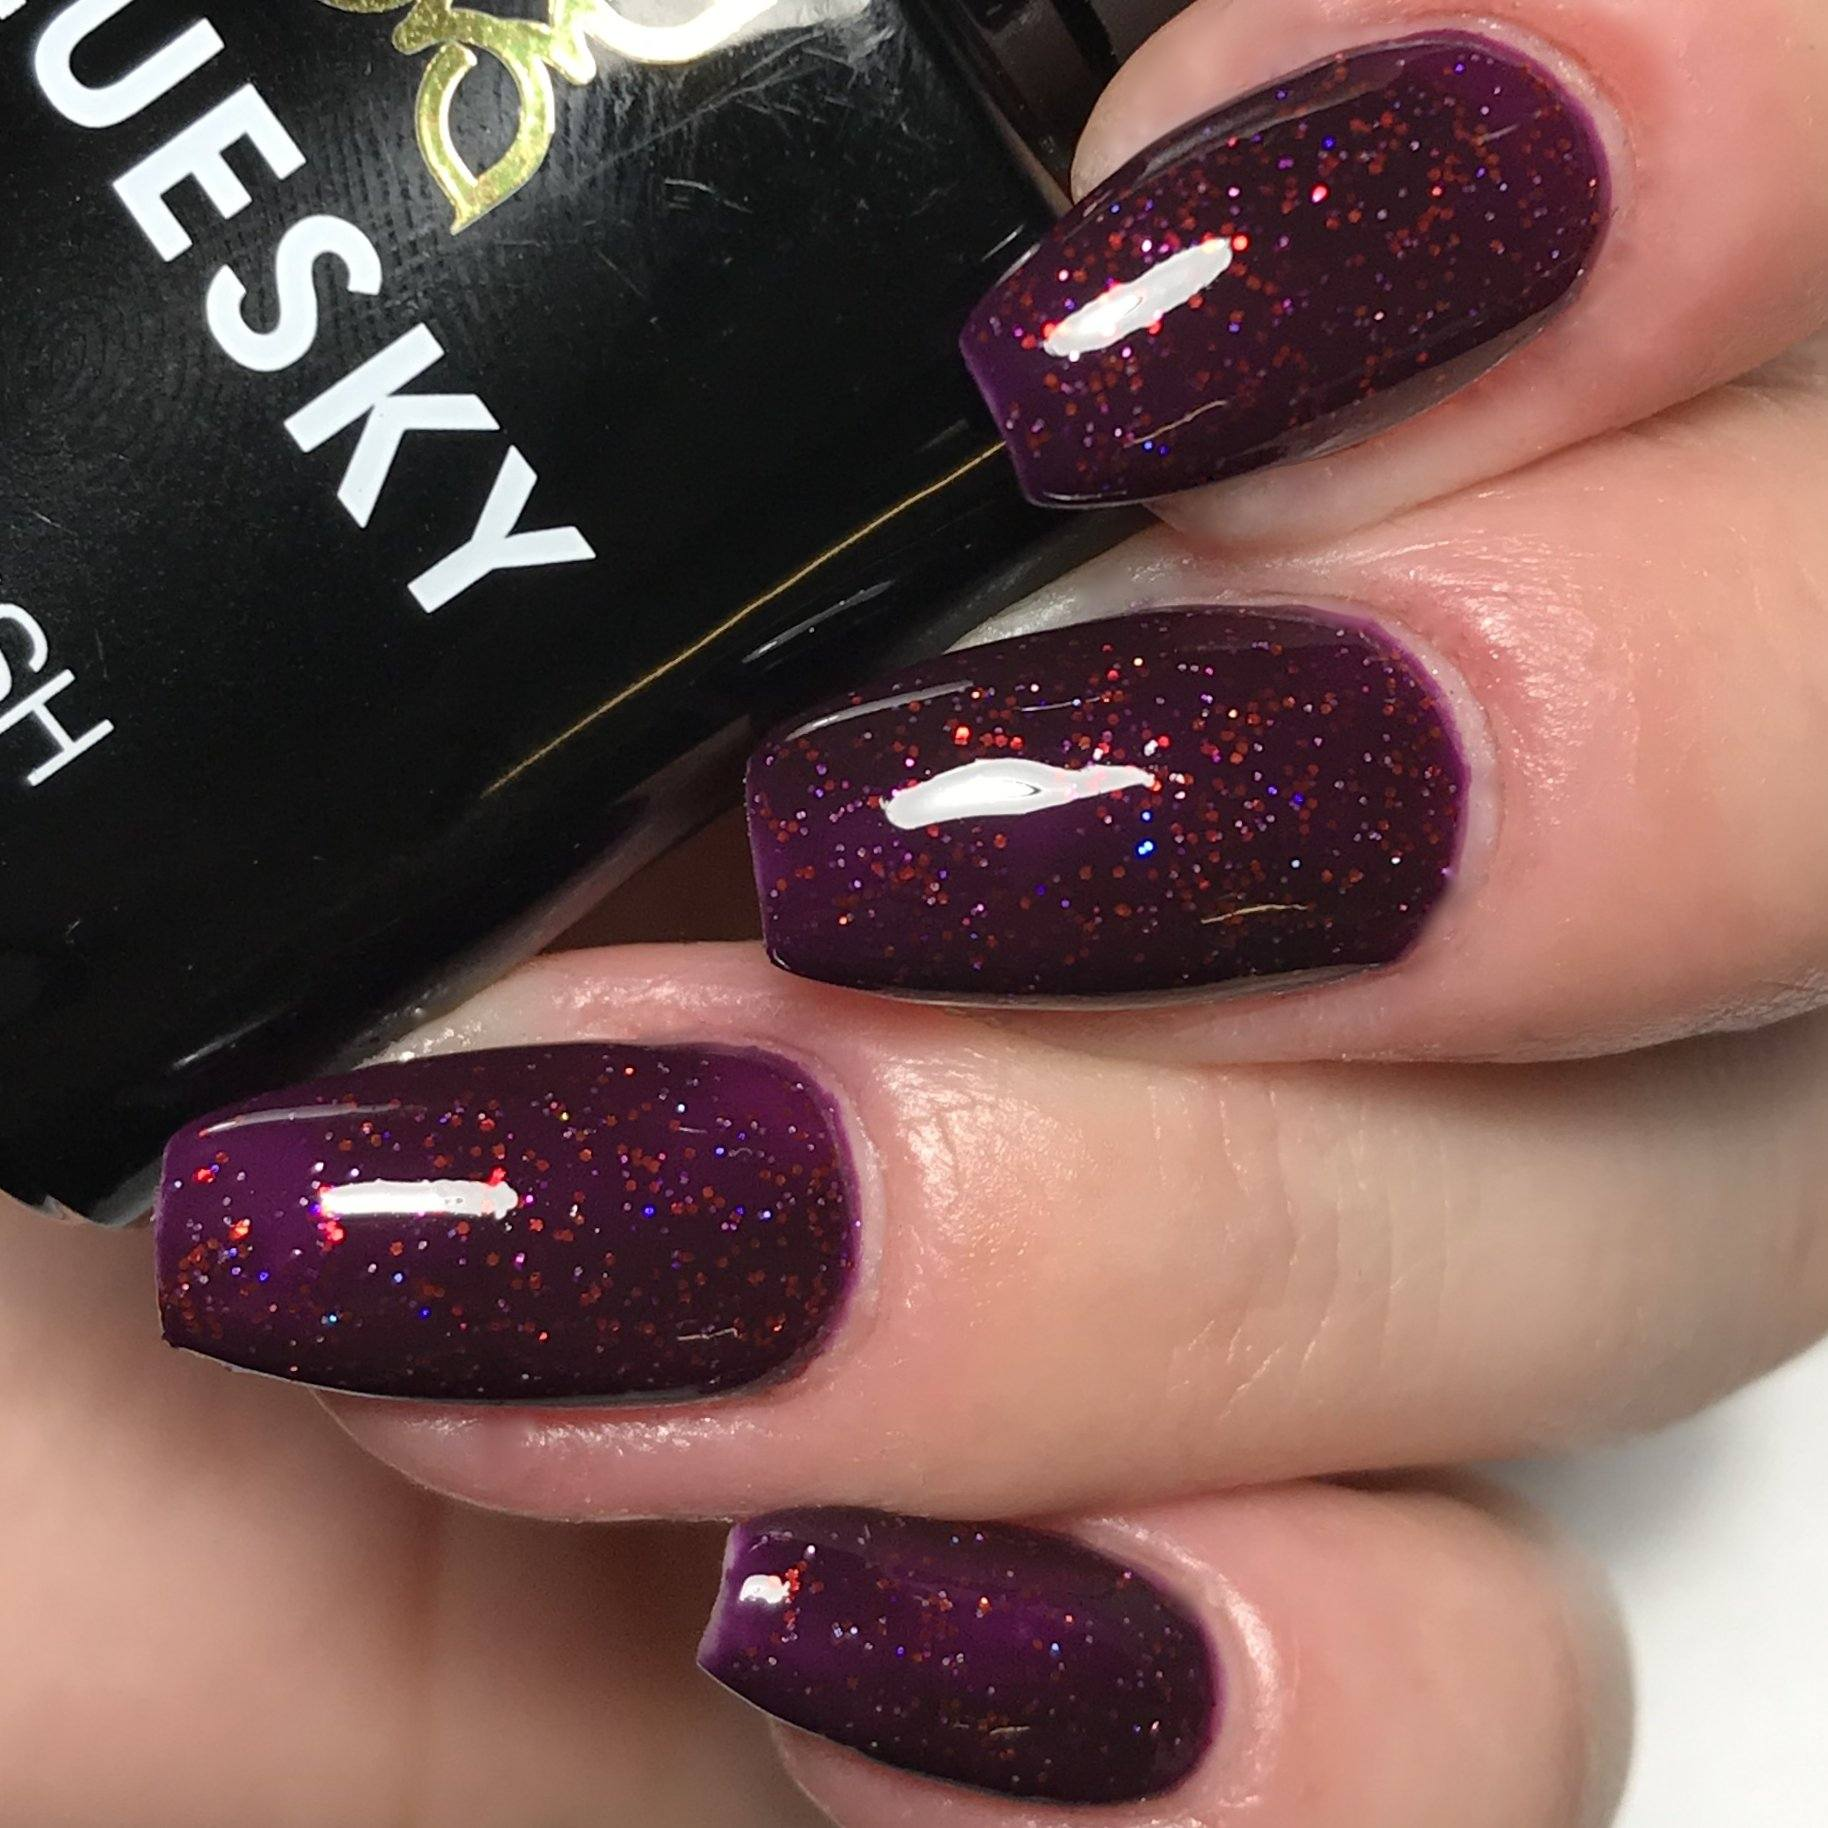 Bluesky BLACK CHERRY UV/LED Soak Off Gel Nail Polish 10ml - Sparkly Dark Purple - Bluesky Nail Gel Polish